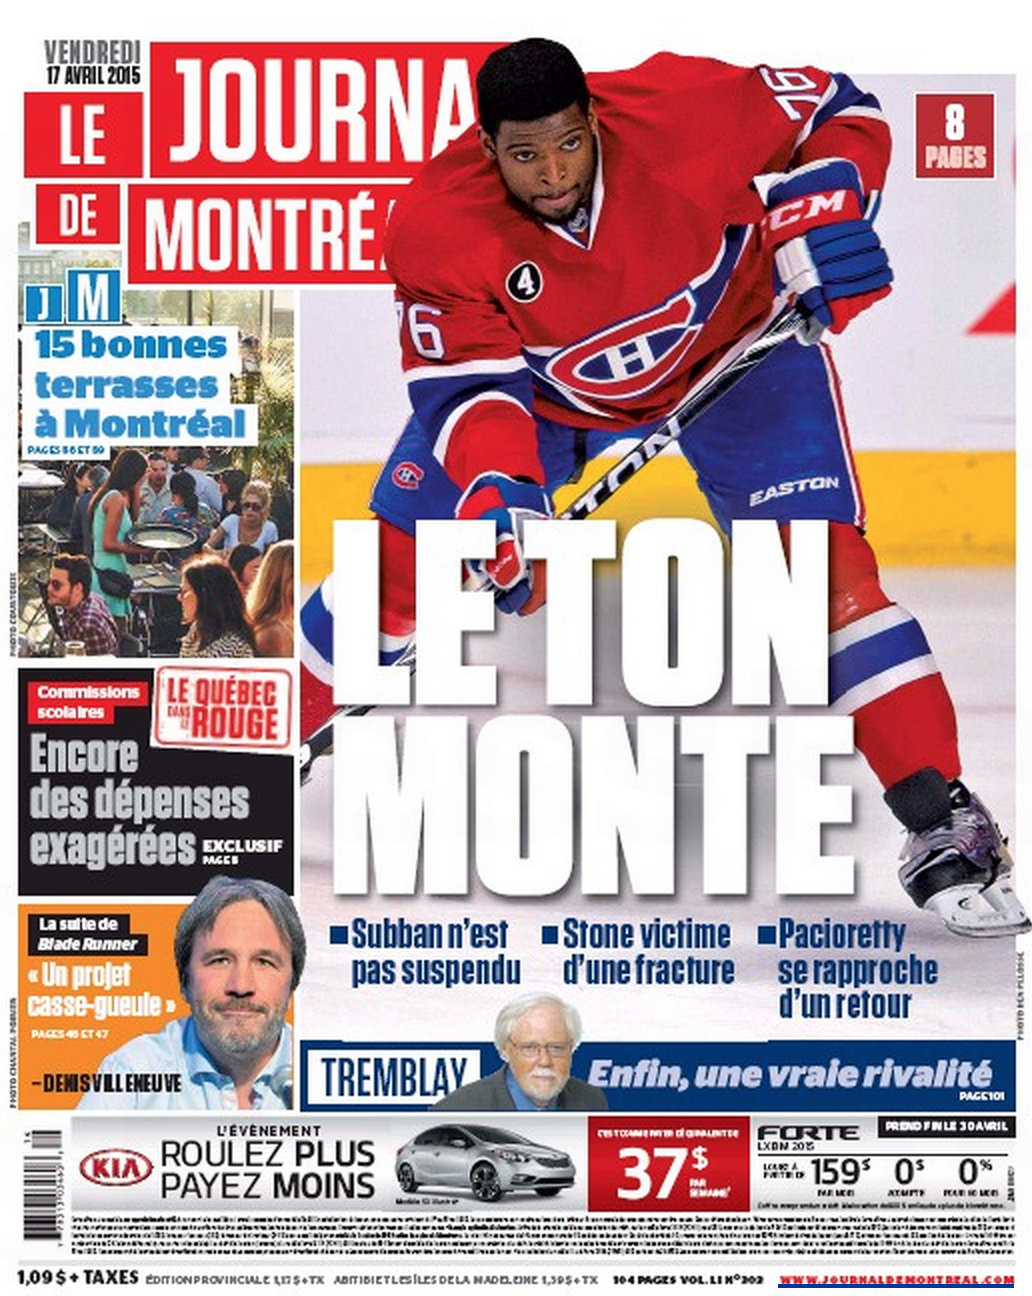 Journal_Montreal_17_aprilie_2015